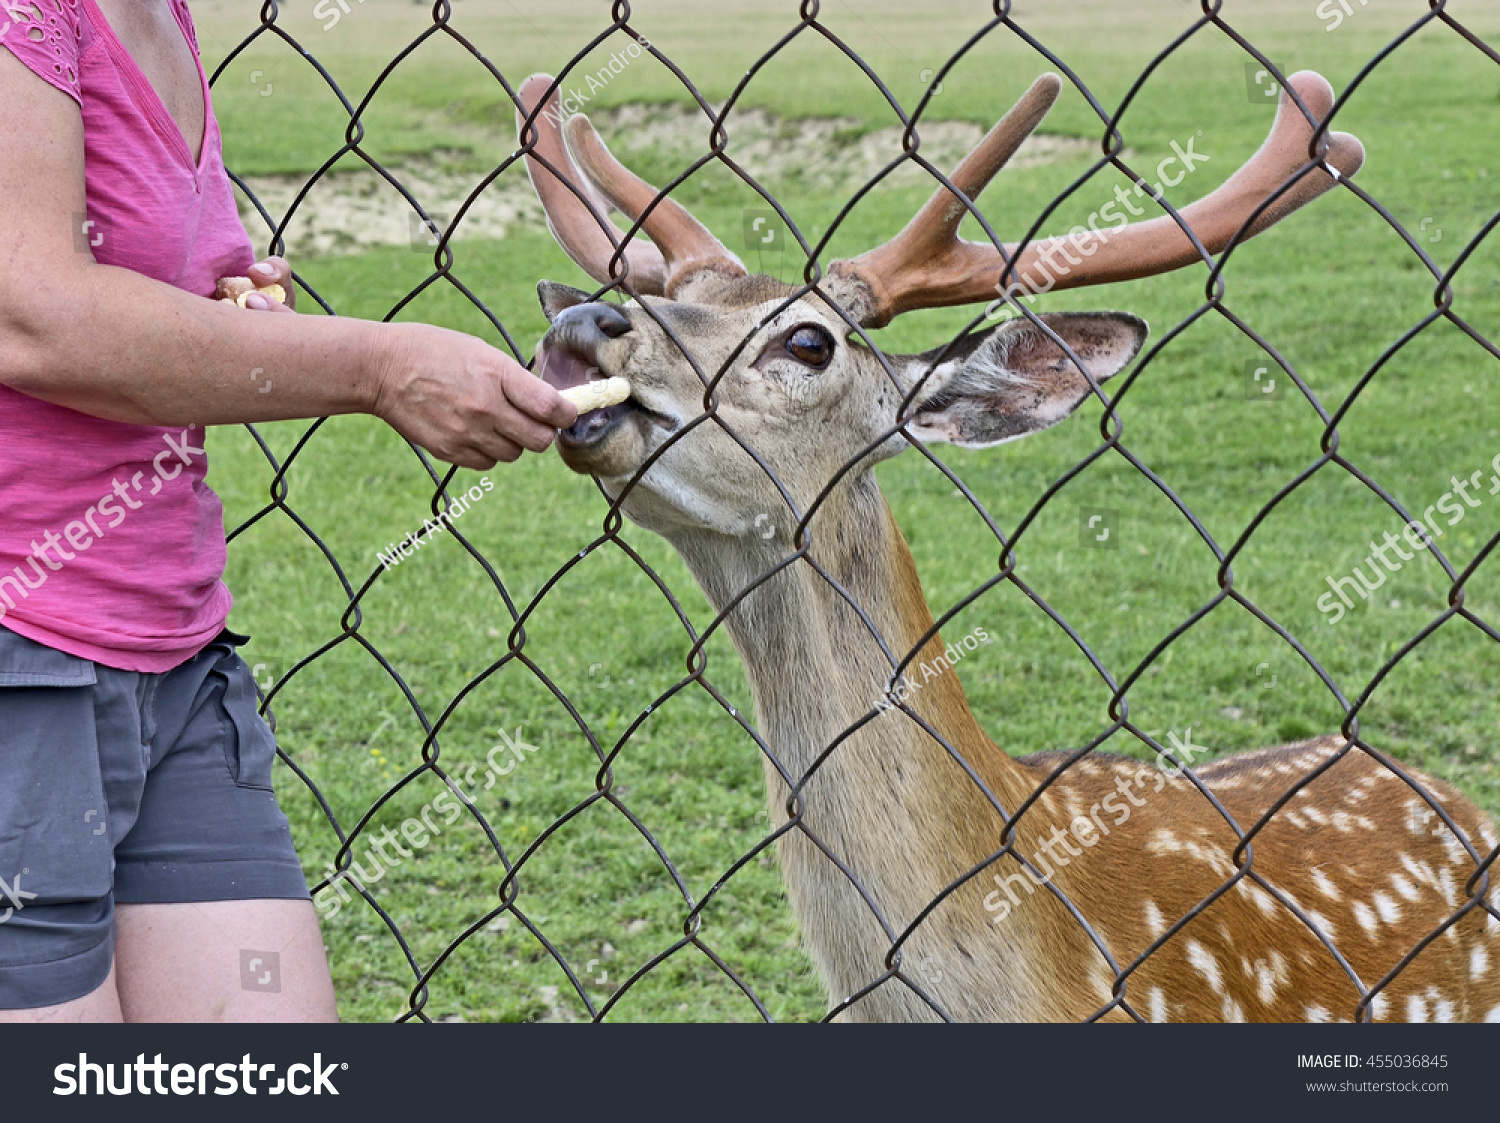 Woman gets deer out of fence